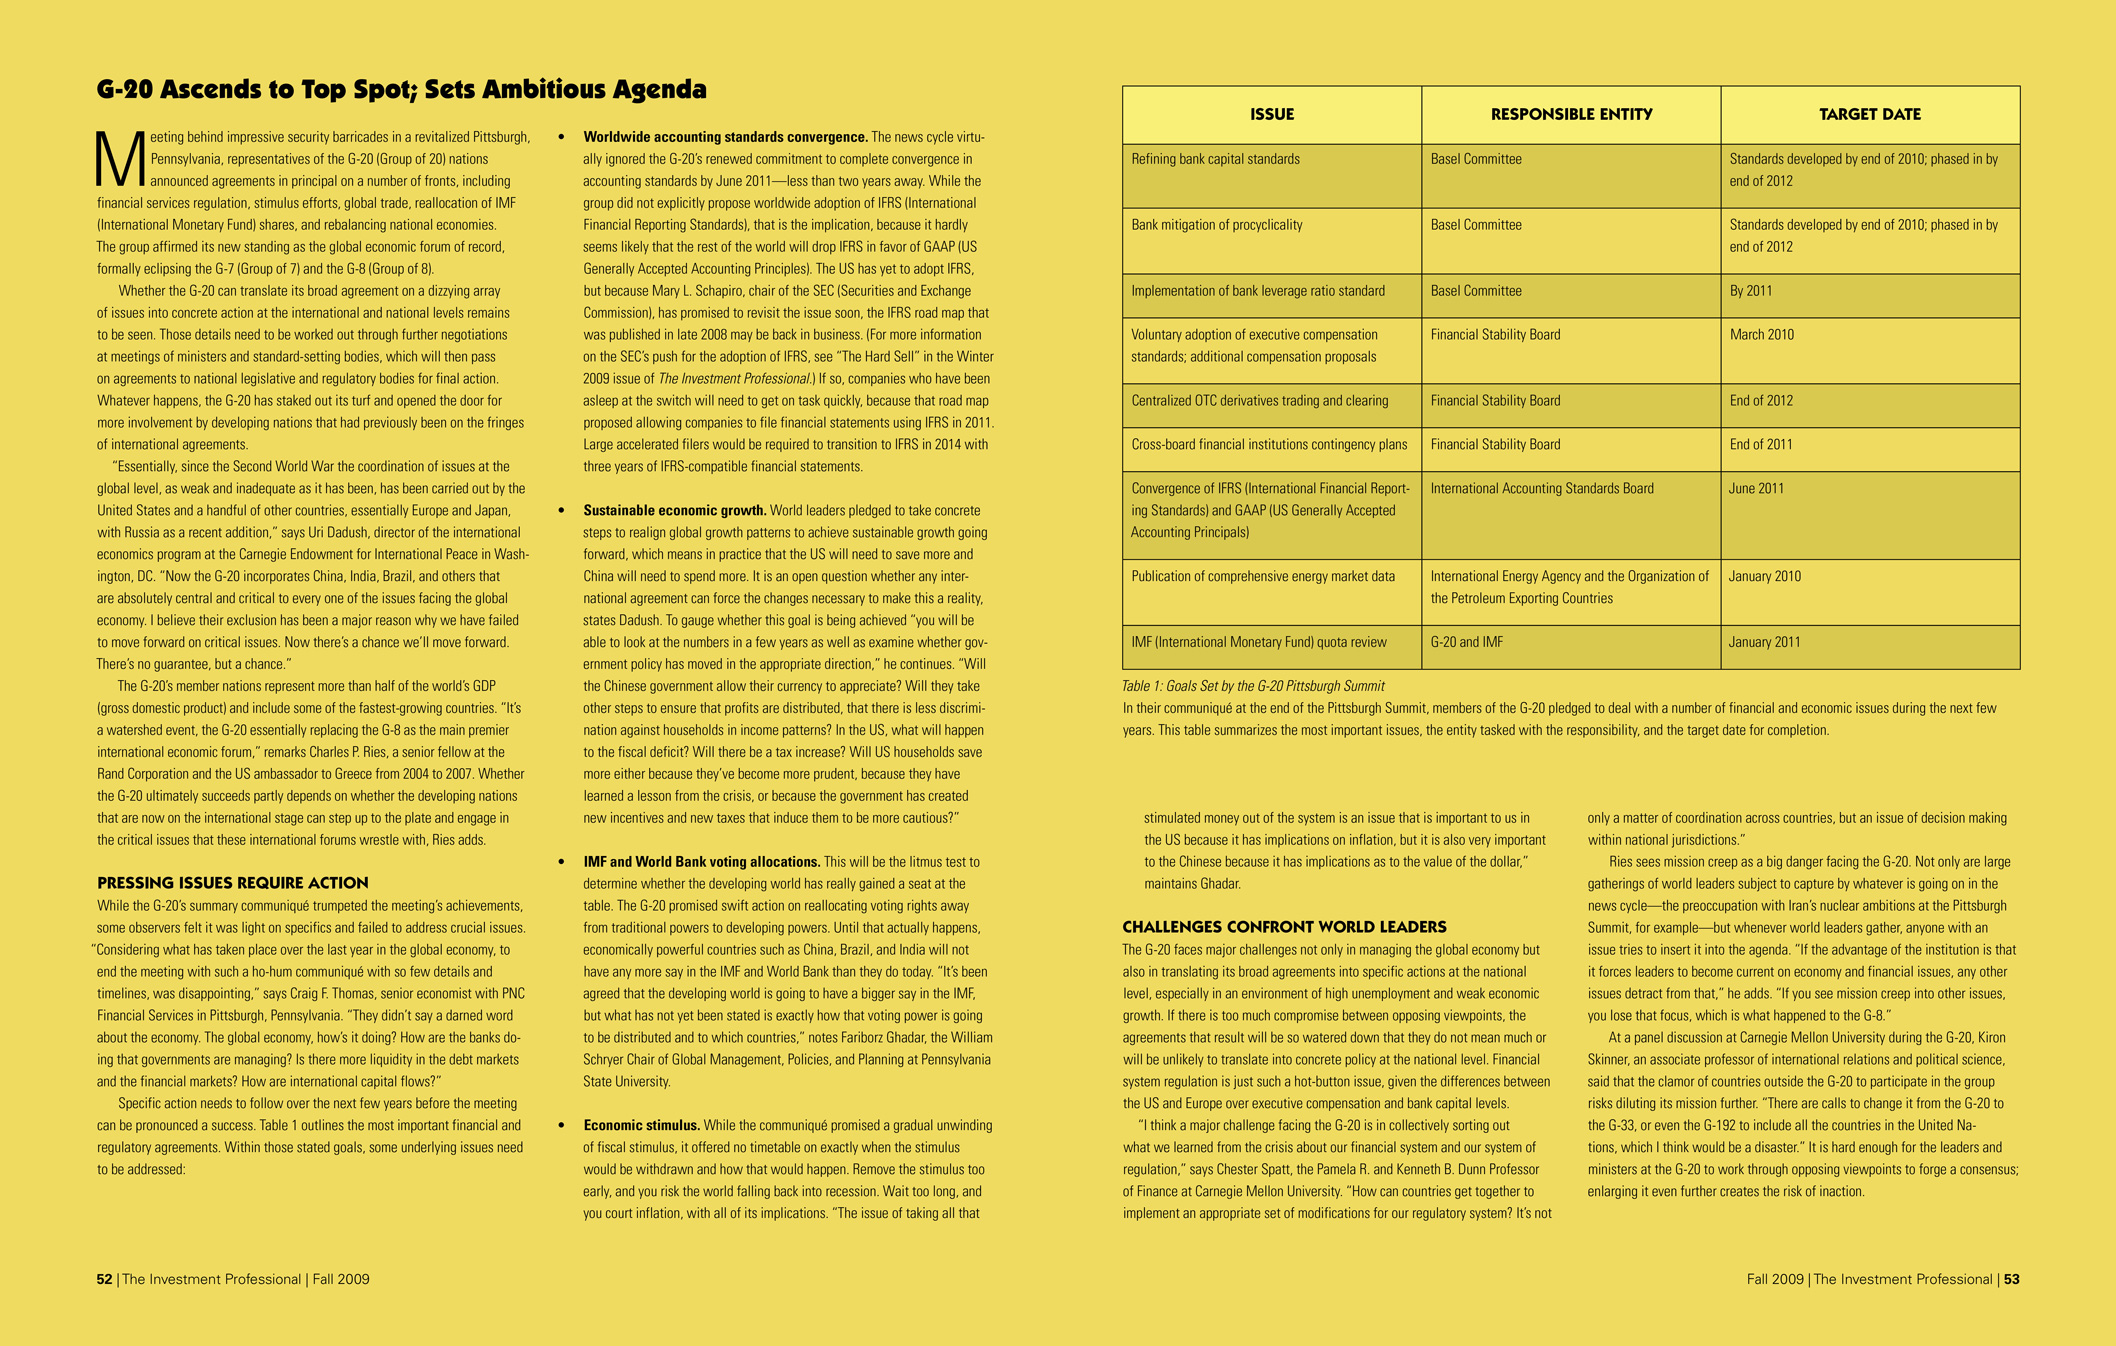 Page design: article in The Investment Professional about the need for international regulation after the 2008 financial crisis.